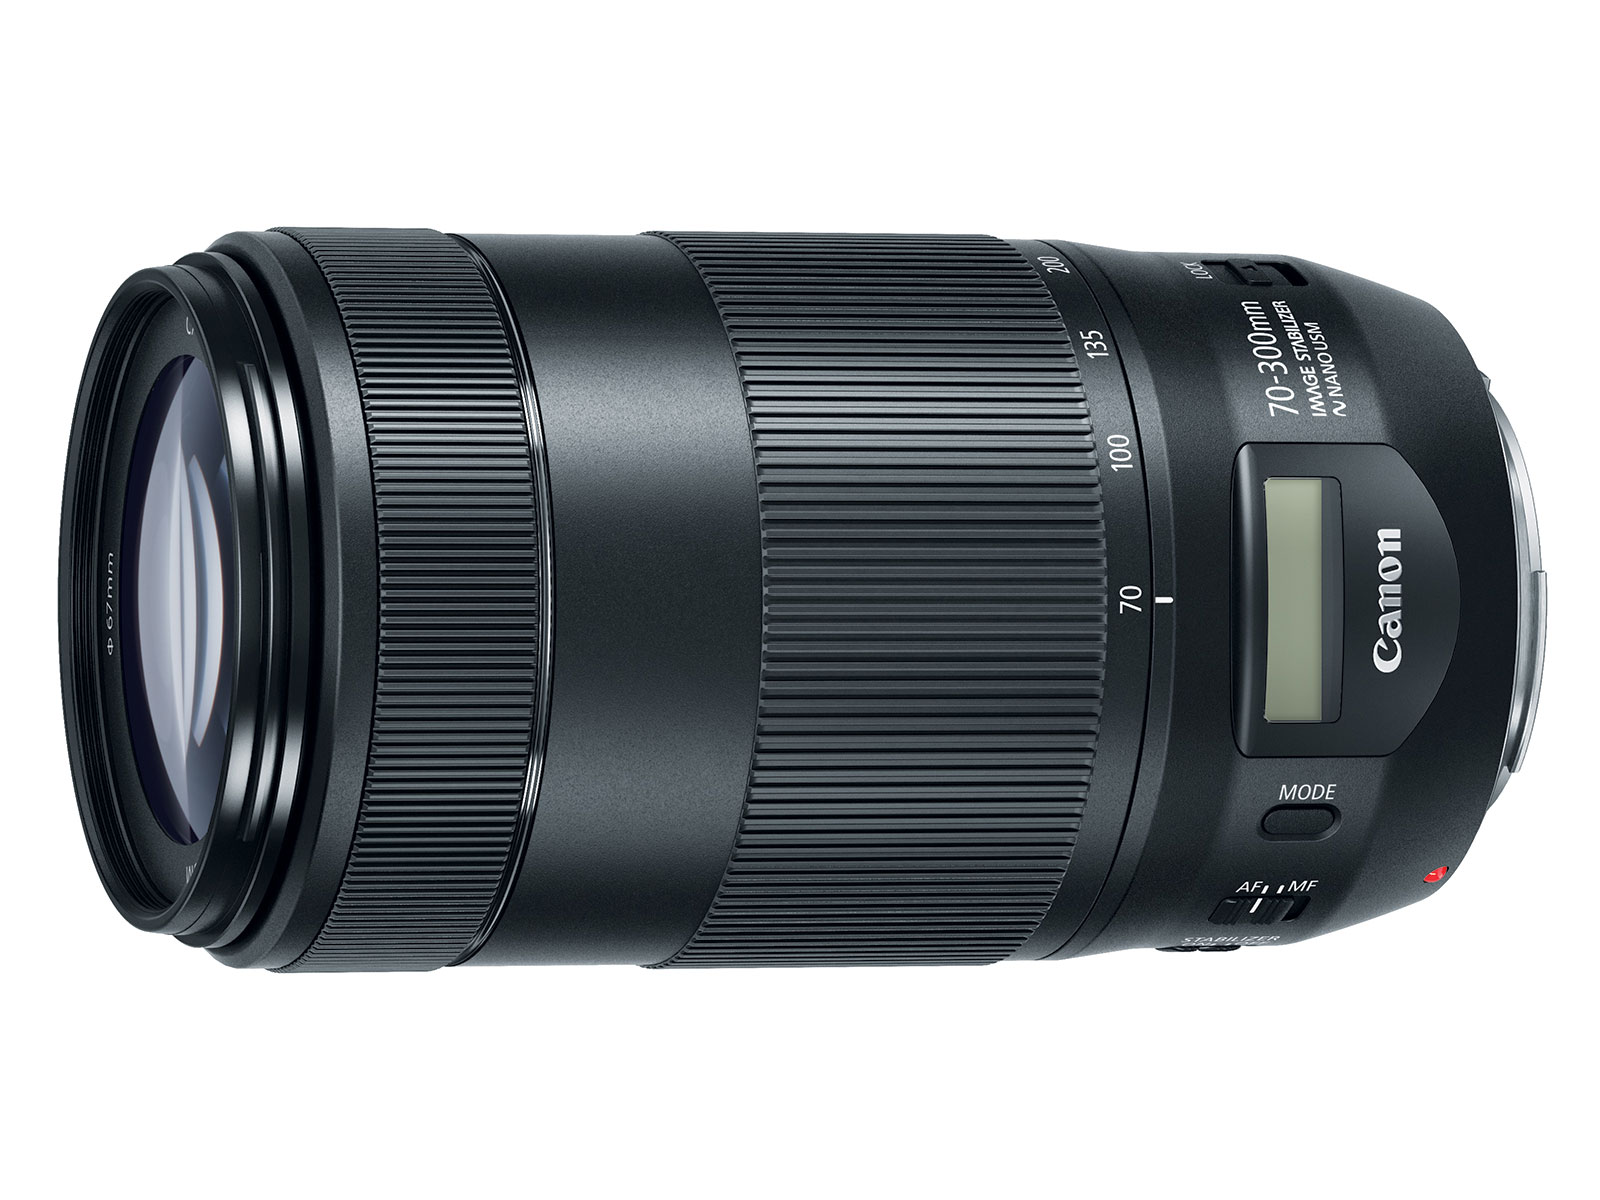 Canon EF 70-300mm f/4-5.6 IS II USM Lens Announced